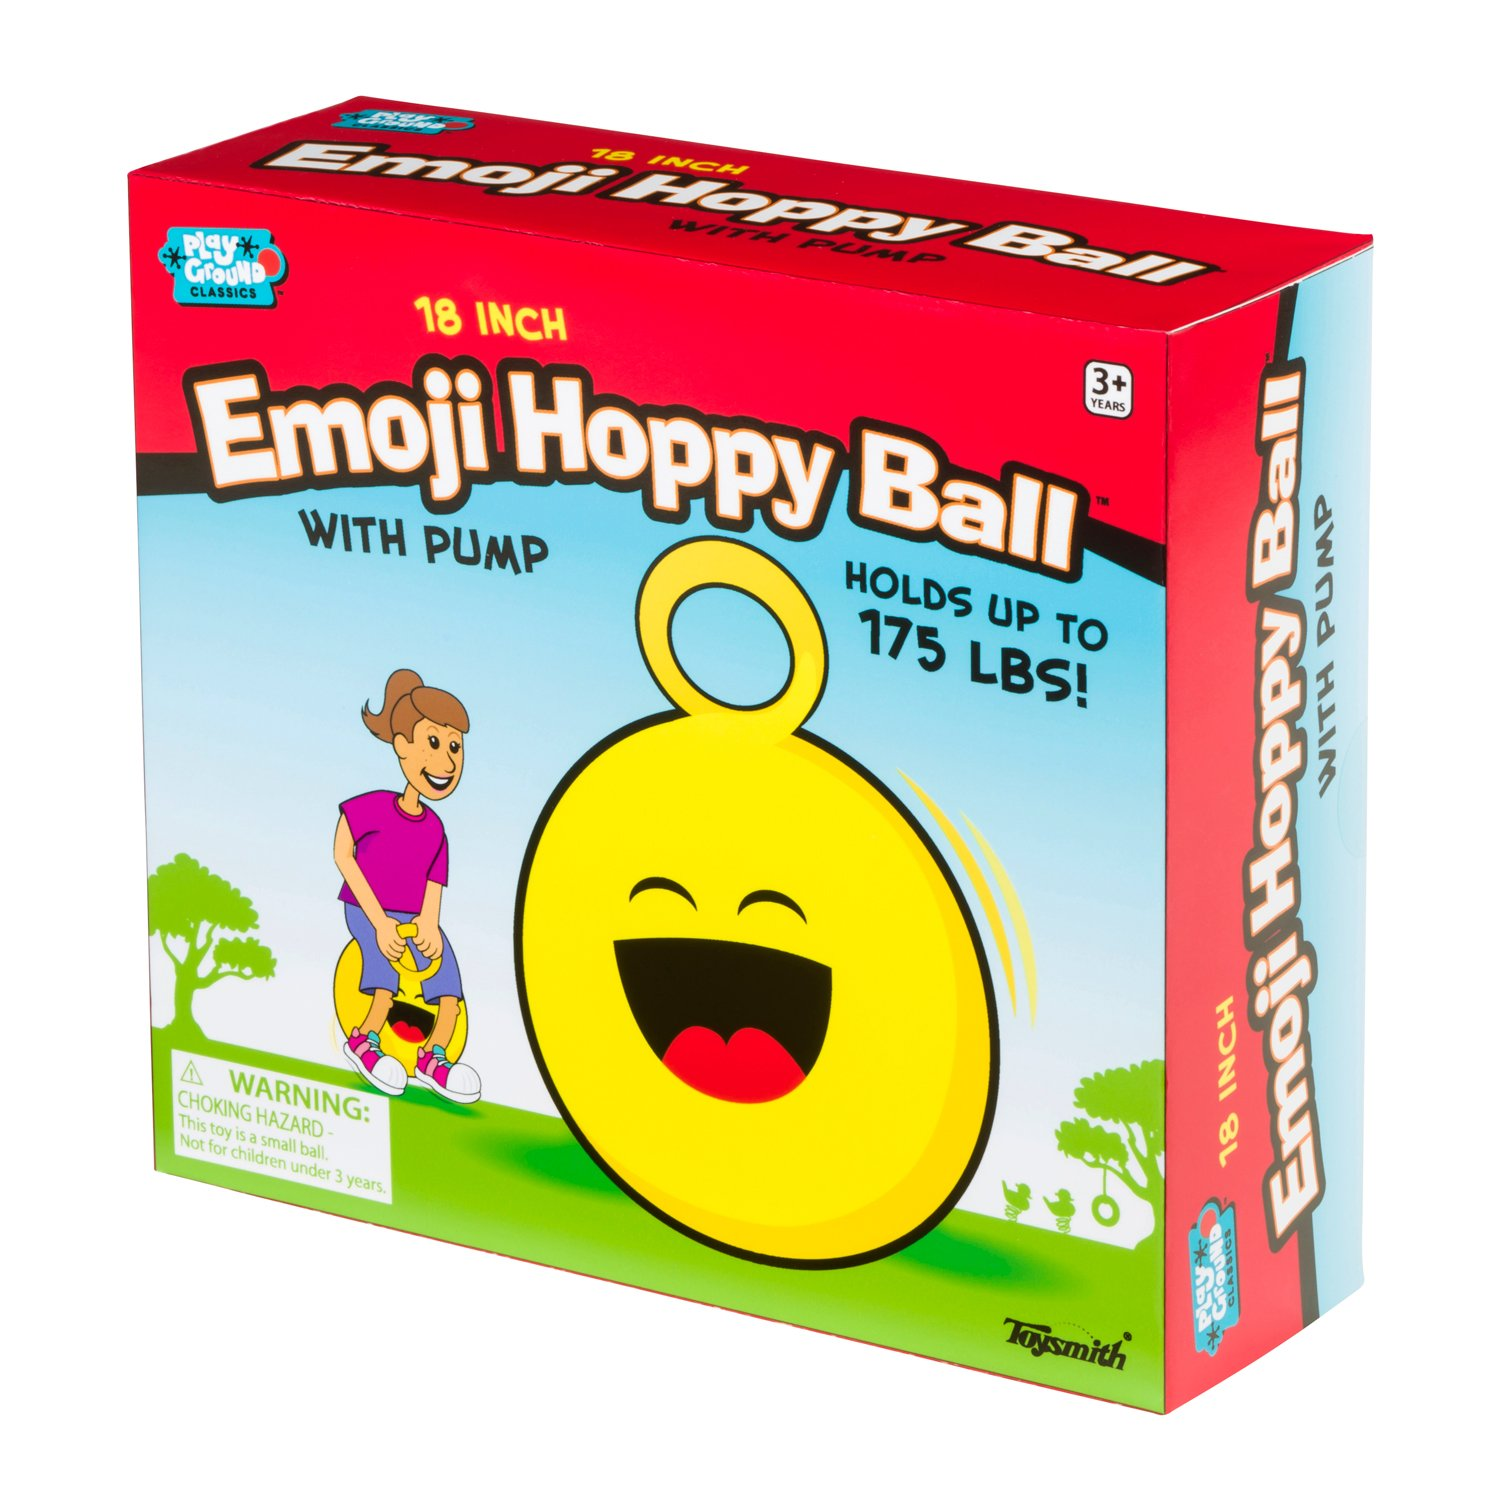 Toysmith 18In Emoji Hoppy Ball with Pump Assorted Styles Ride On